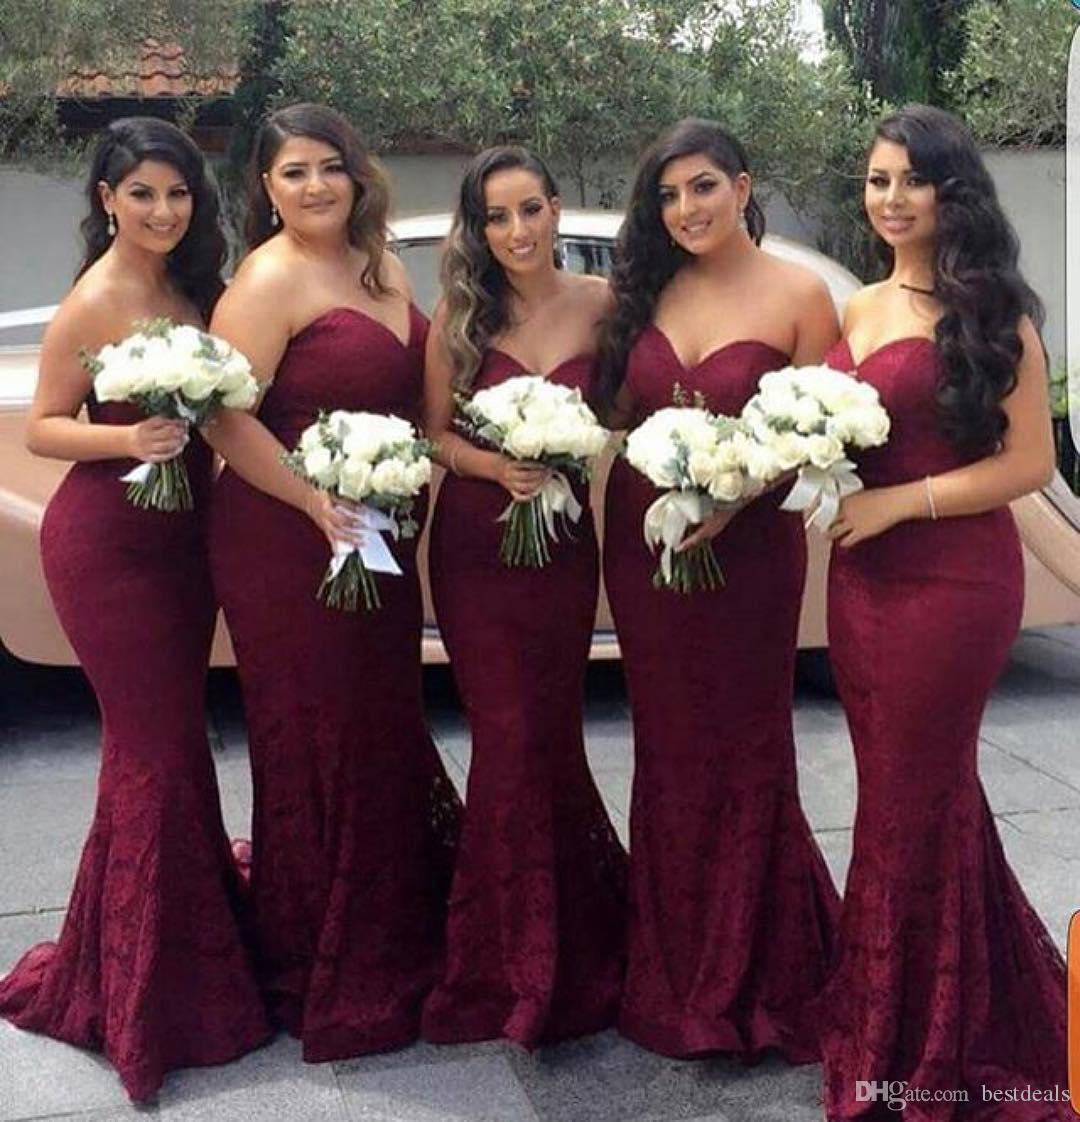 Elegant burgundy sweetheart lace mermaid cheap long bridesmaid elegant burgundy sweetheart lace mermaid cheap long bridesmaid dresses 2017 wine maid of honor wedding guest dress prom party gowns fuschia pink bridesmaid ombrellifo Choice Image